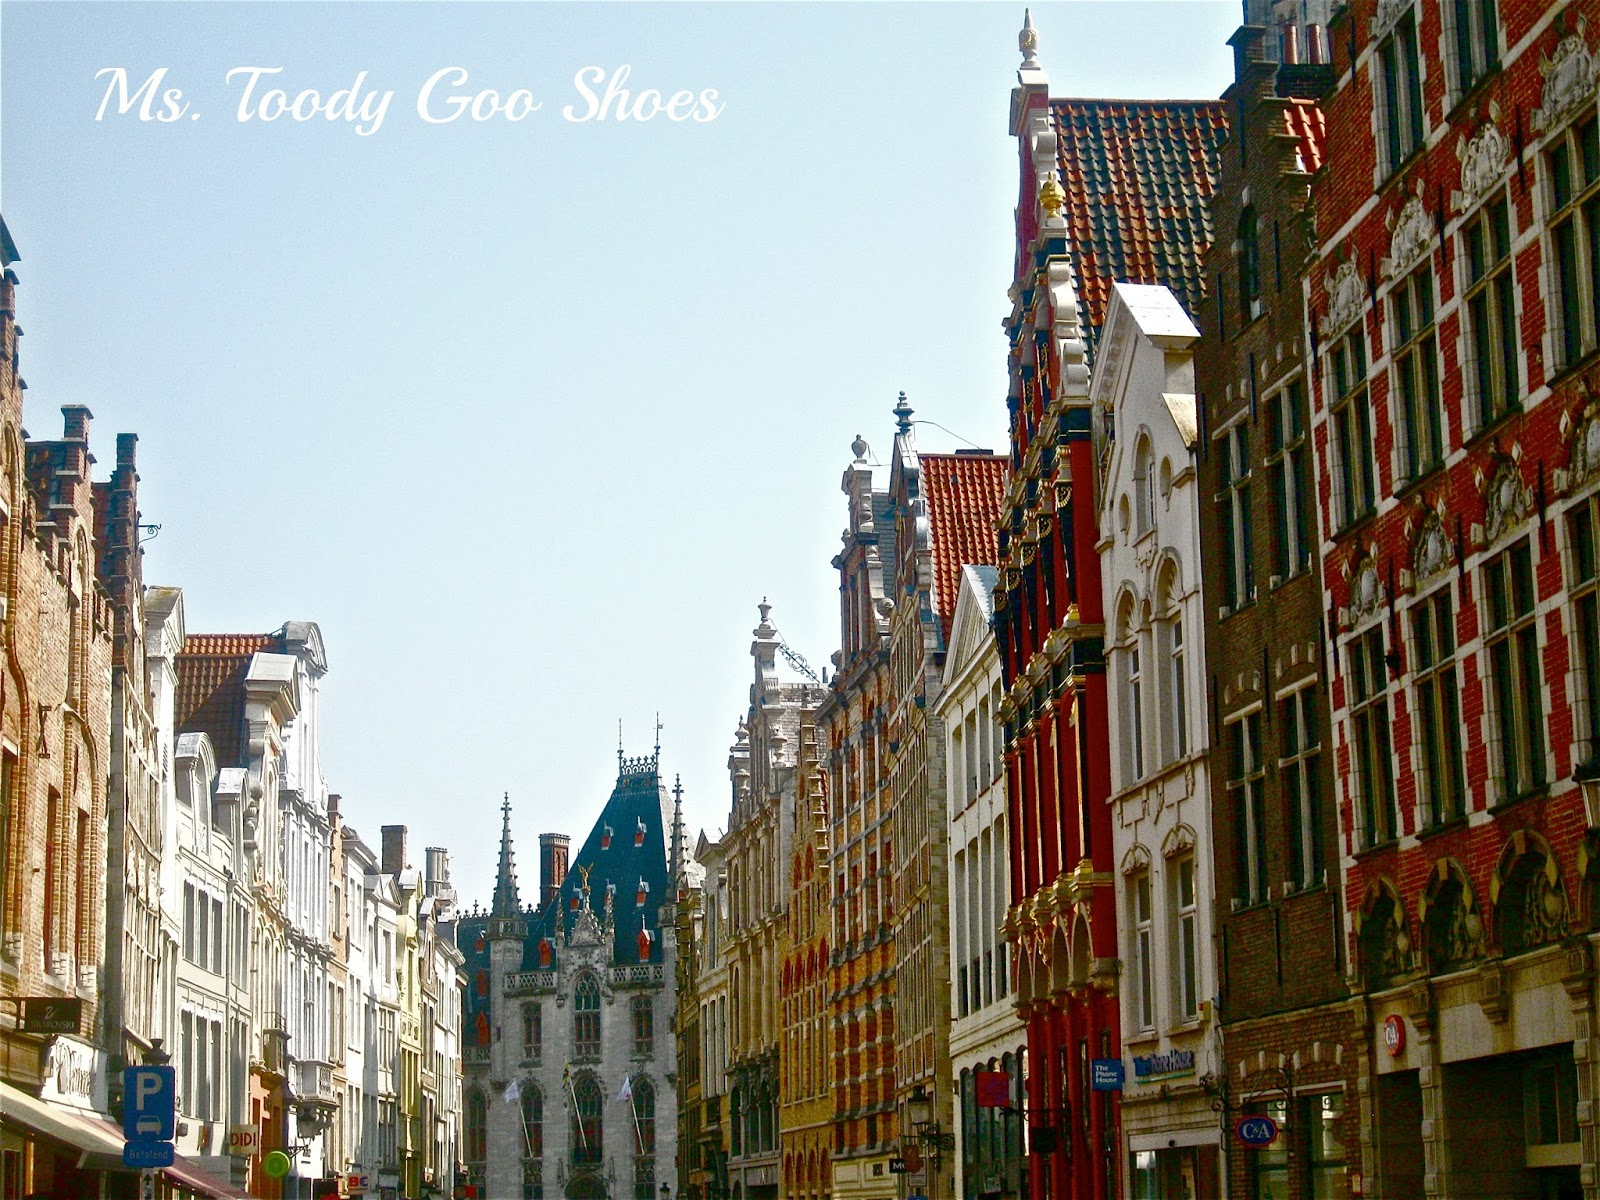 Bruges, Belgium ---  Ms. Toody Goo Shoes